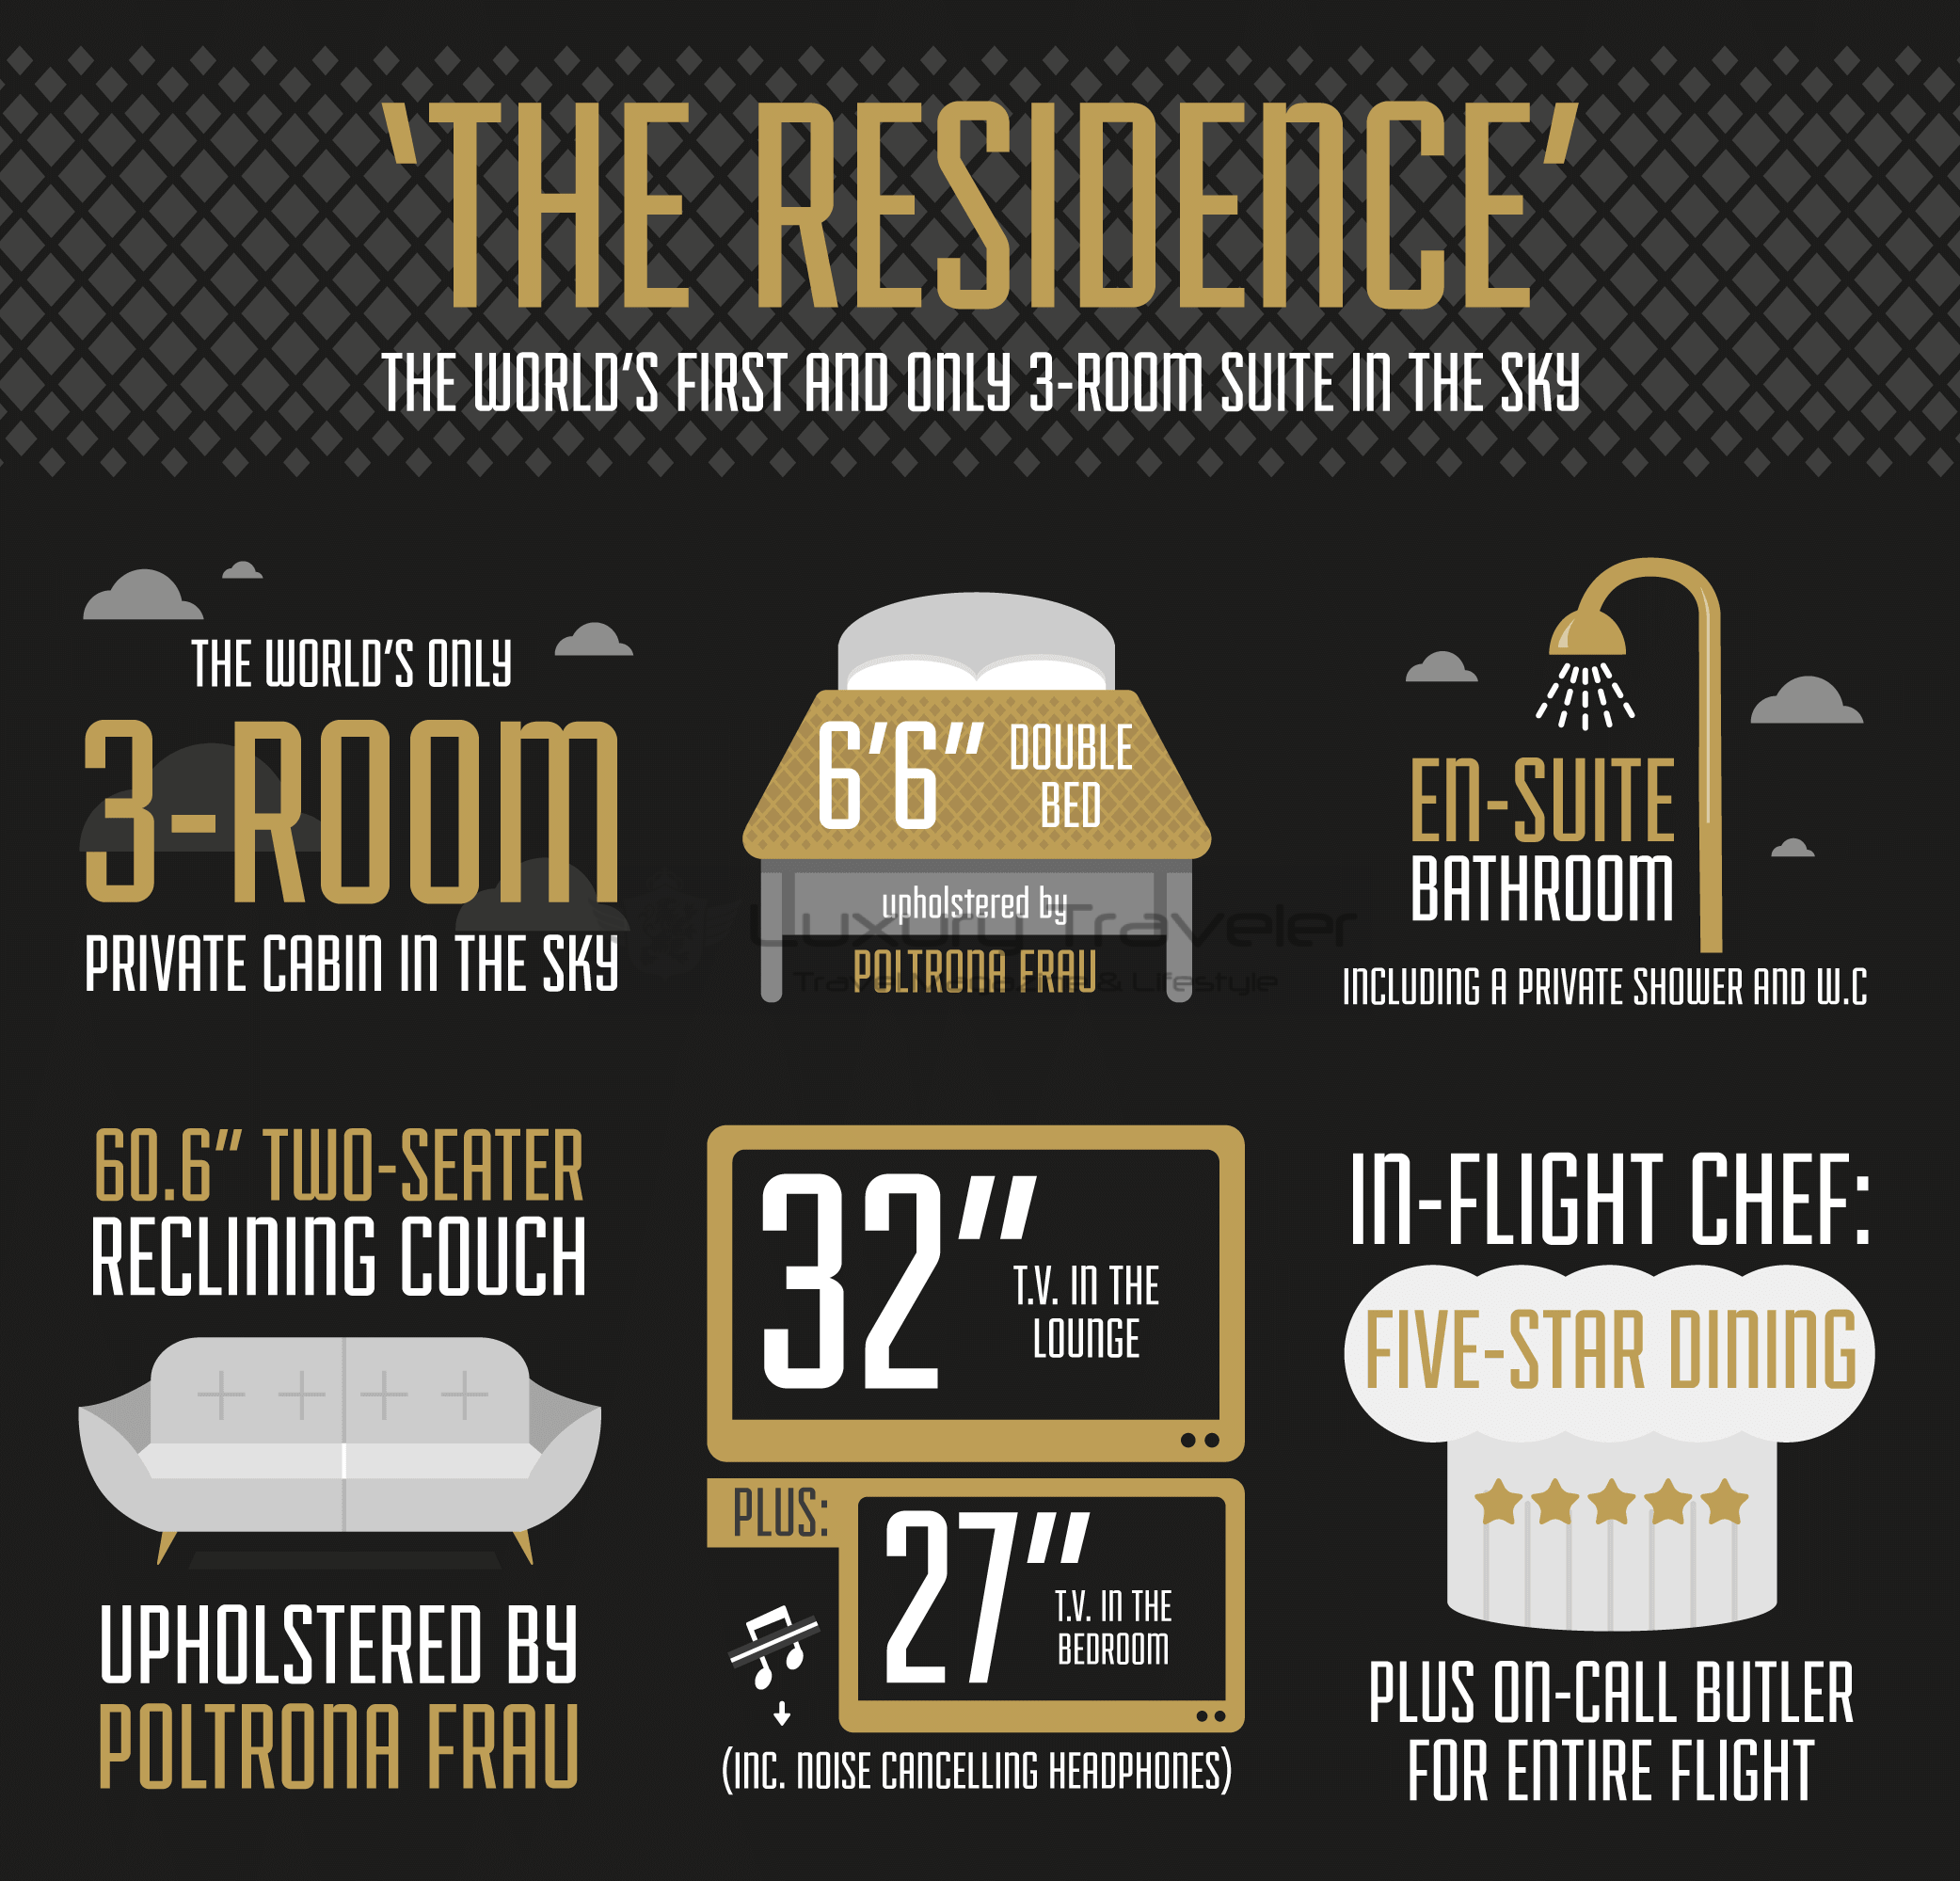 Best Apartment Review Site: Etihad Airways: The Residence